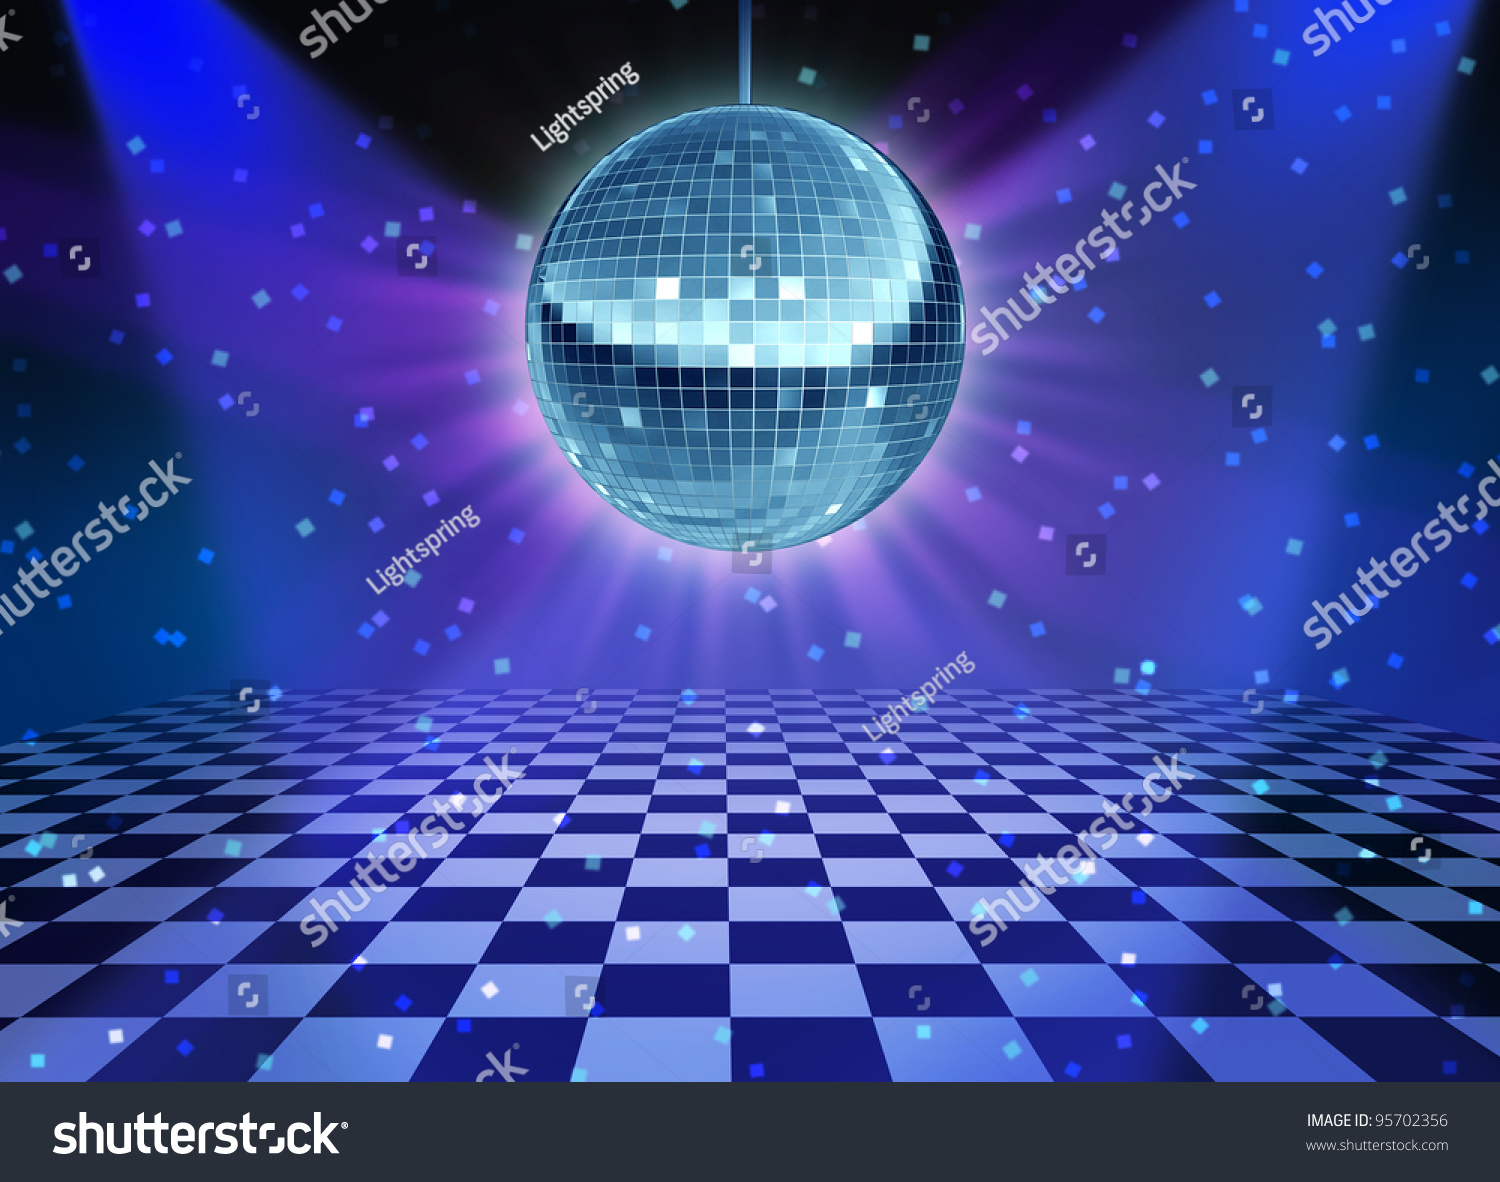 Dance floor disco night mirror ball stock illustration for 1234 get on the dance floor songs download